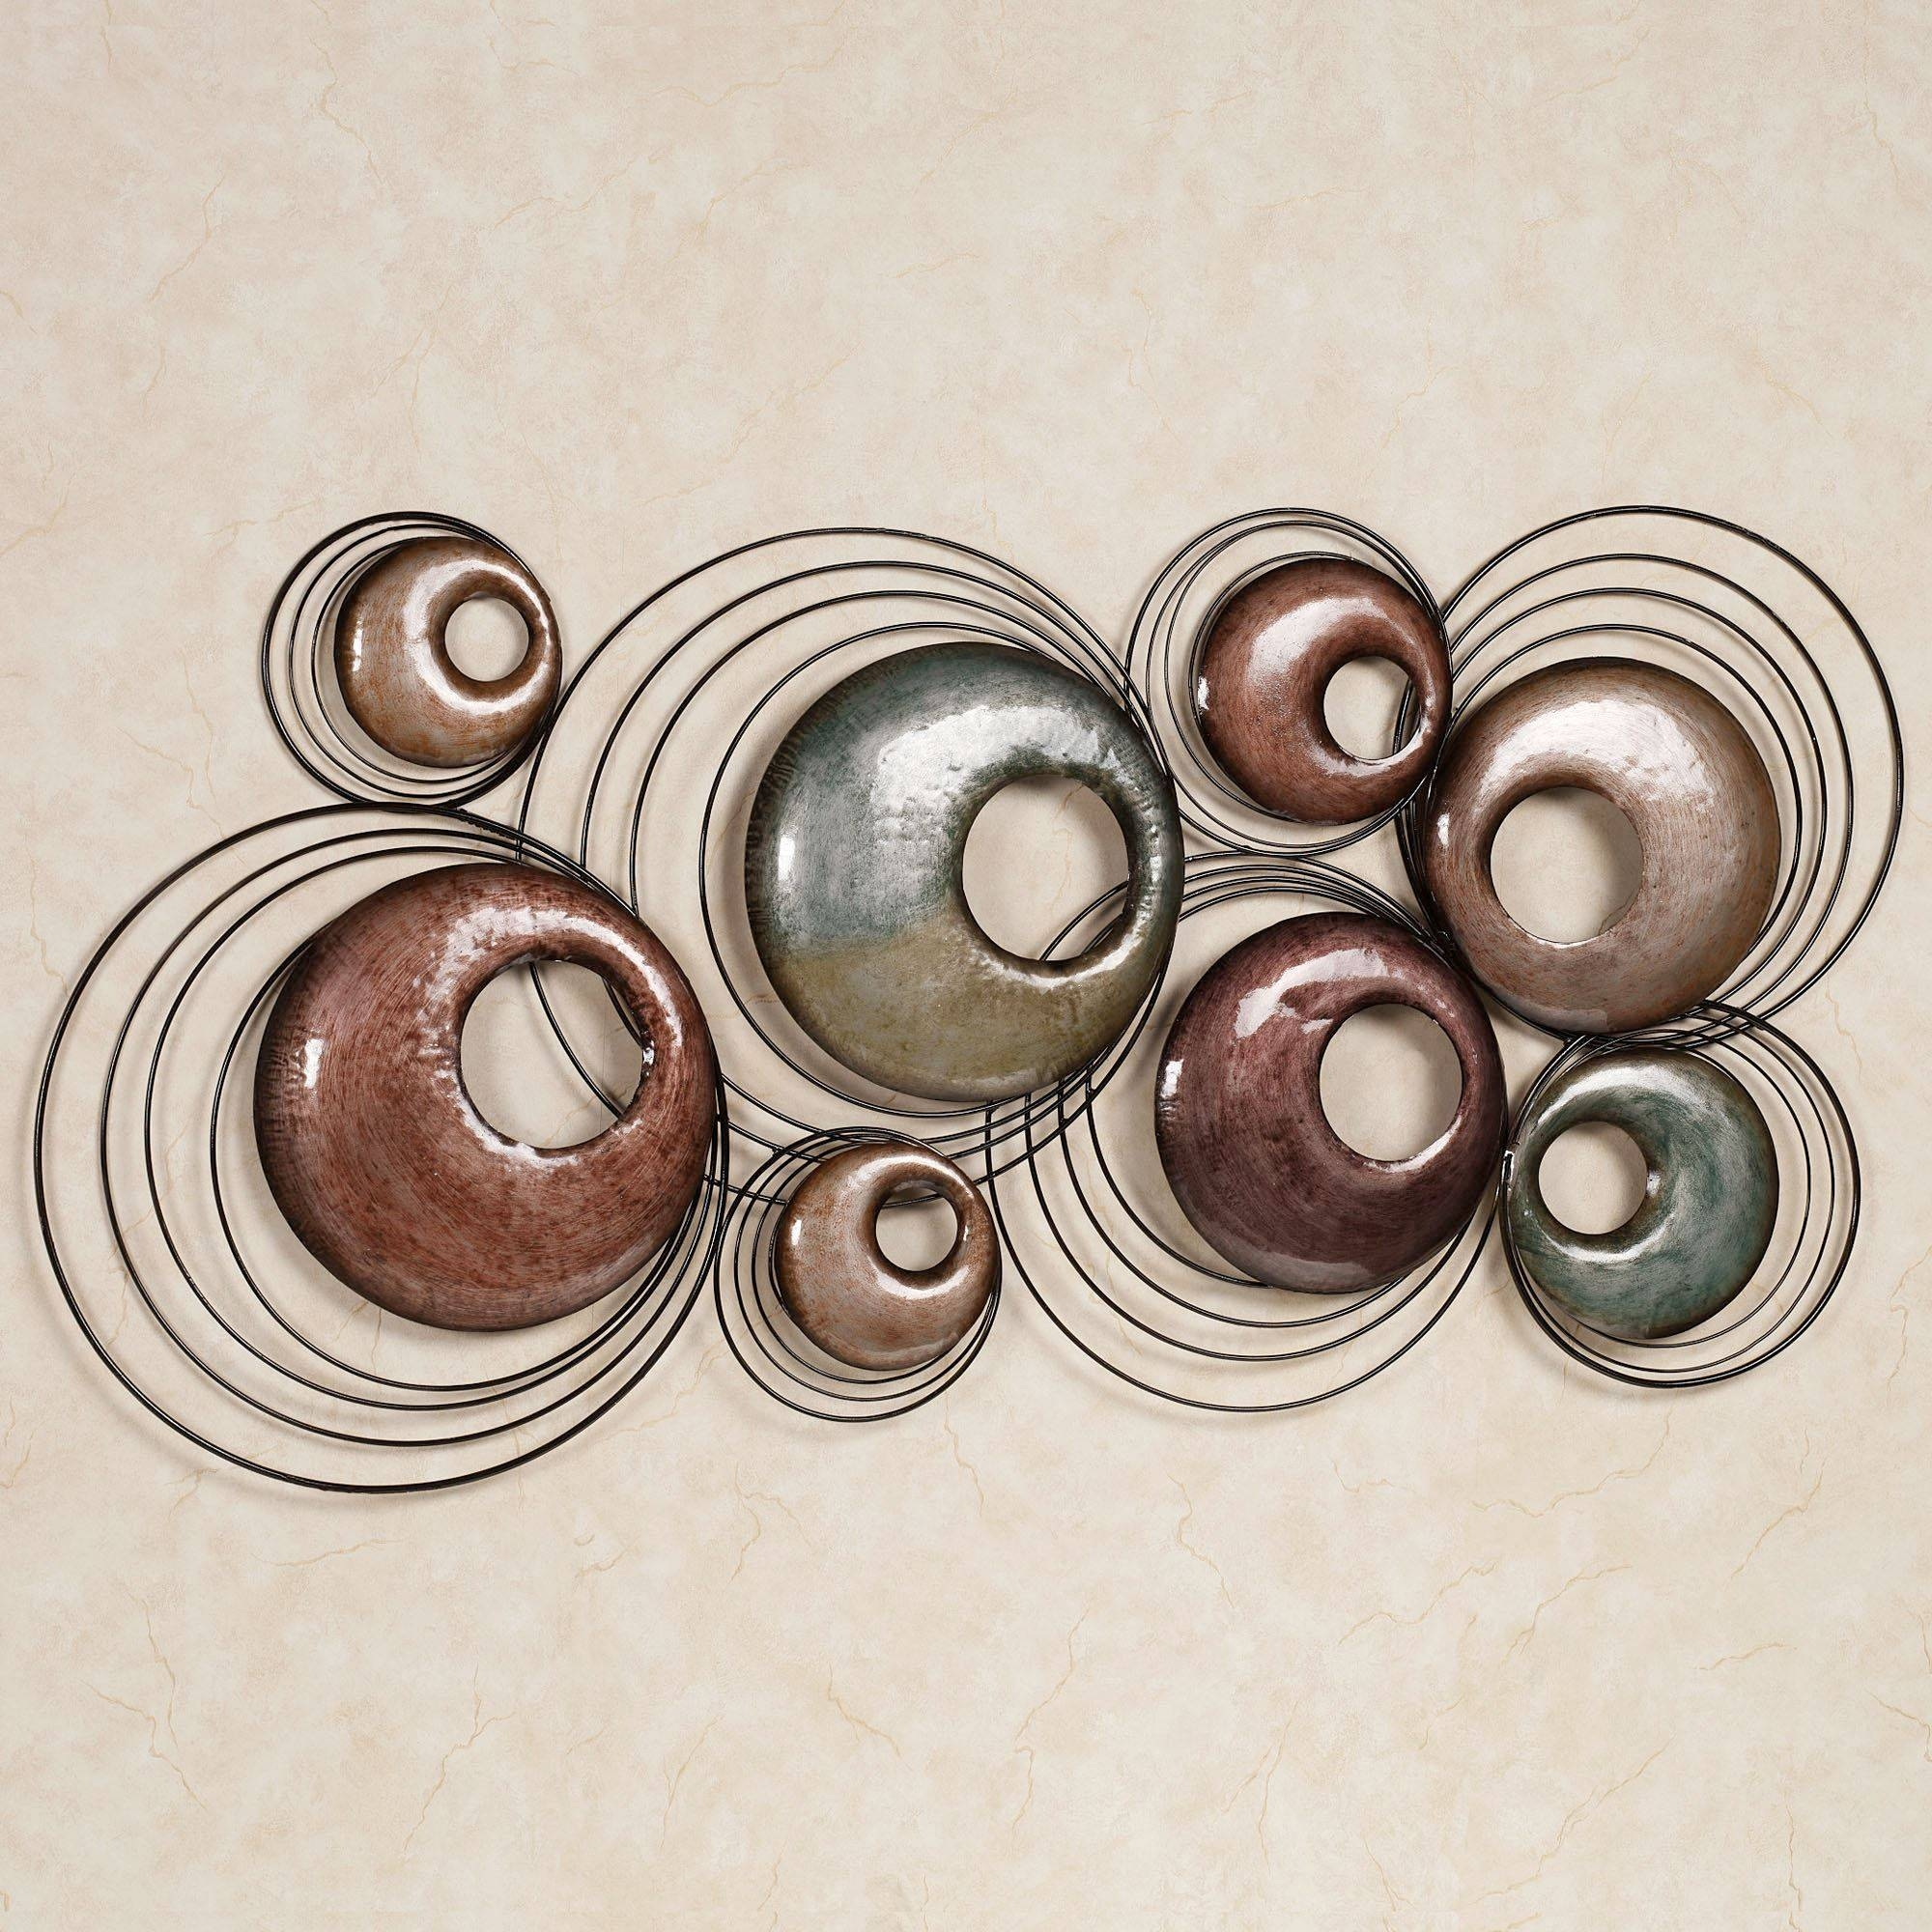 Echo Metal Wall Sculpture Art With Regard To Current Abstract Metal Wall Art Sculptures (View 3 of 20)